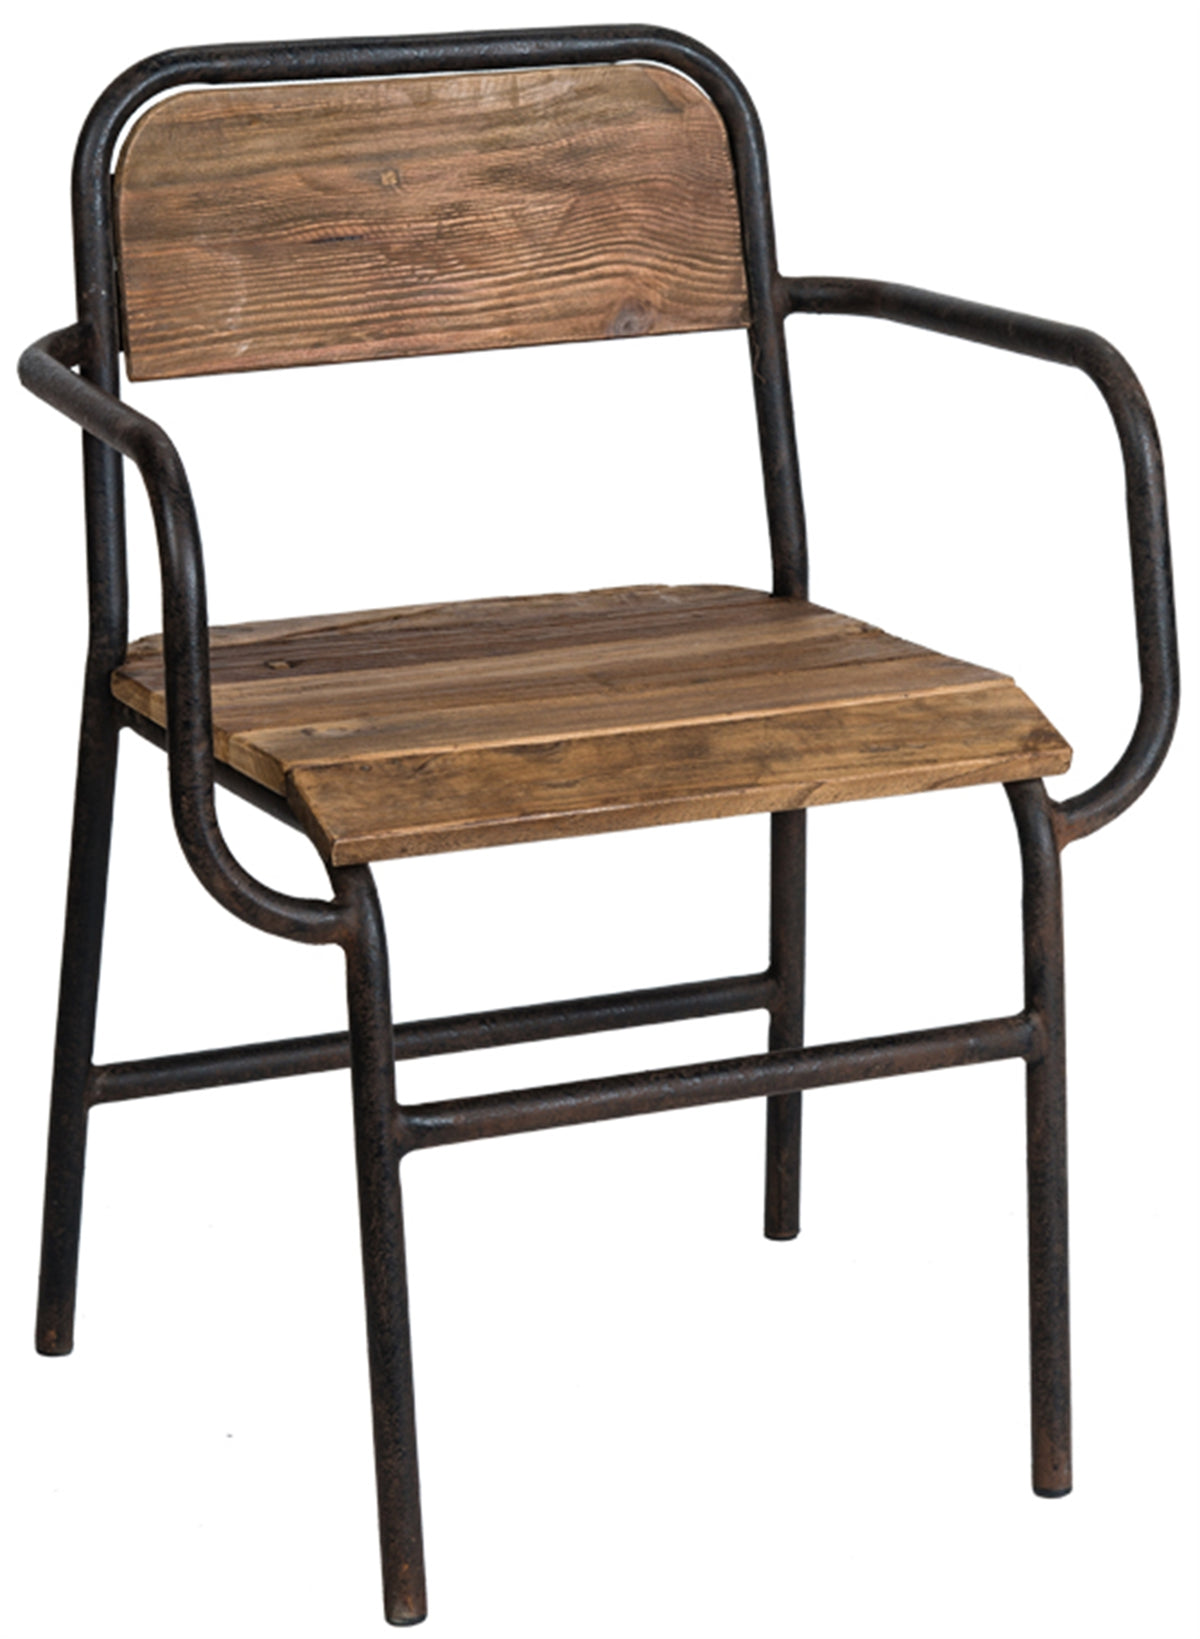 Reclaimed Wood and Metal Captain's Chair